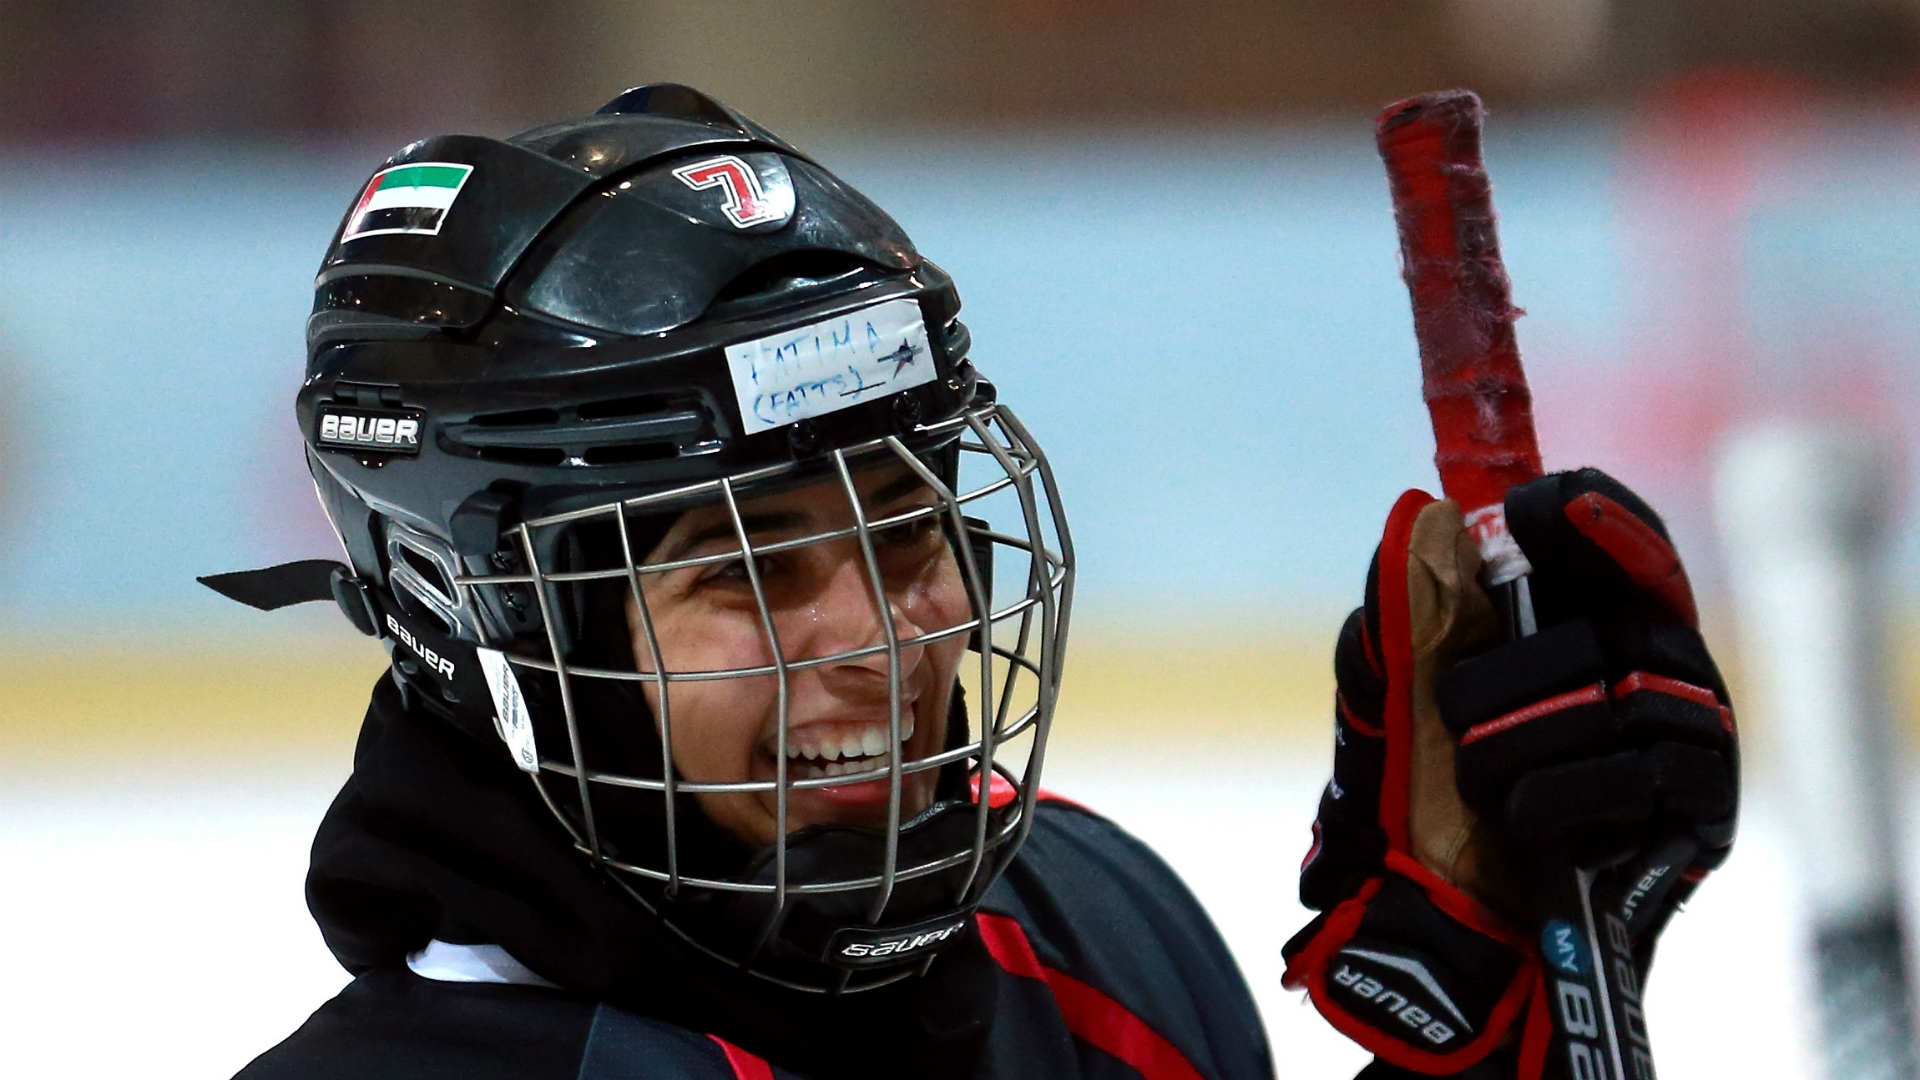 Capitals invite UAE women's hockey player to practice with them